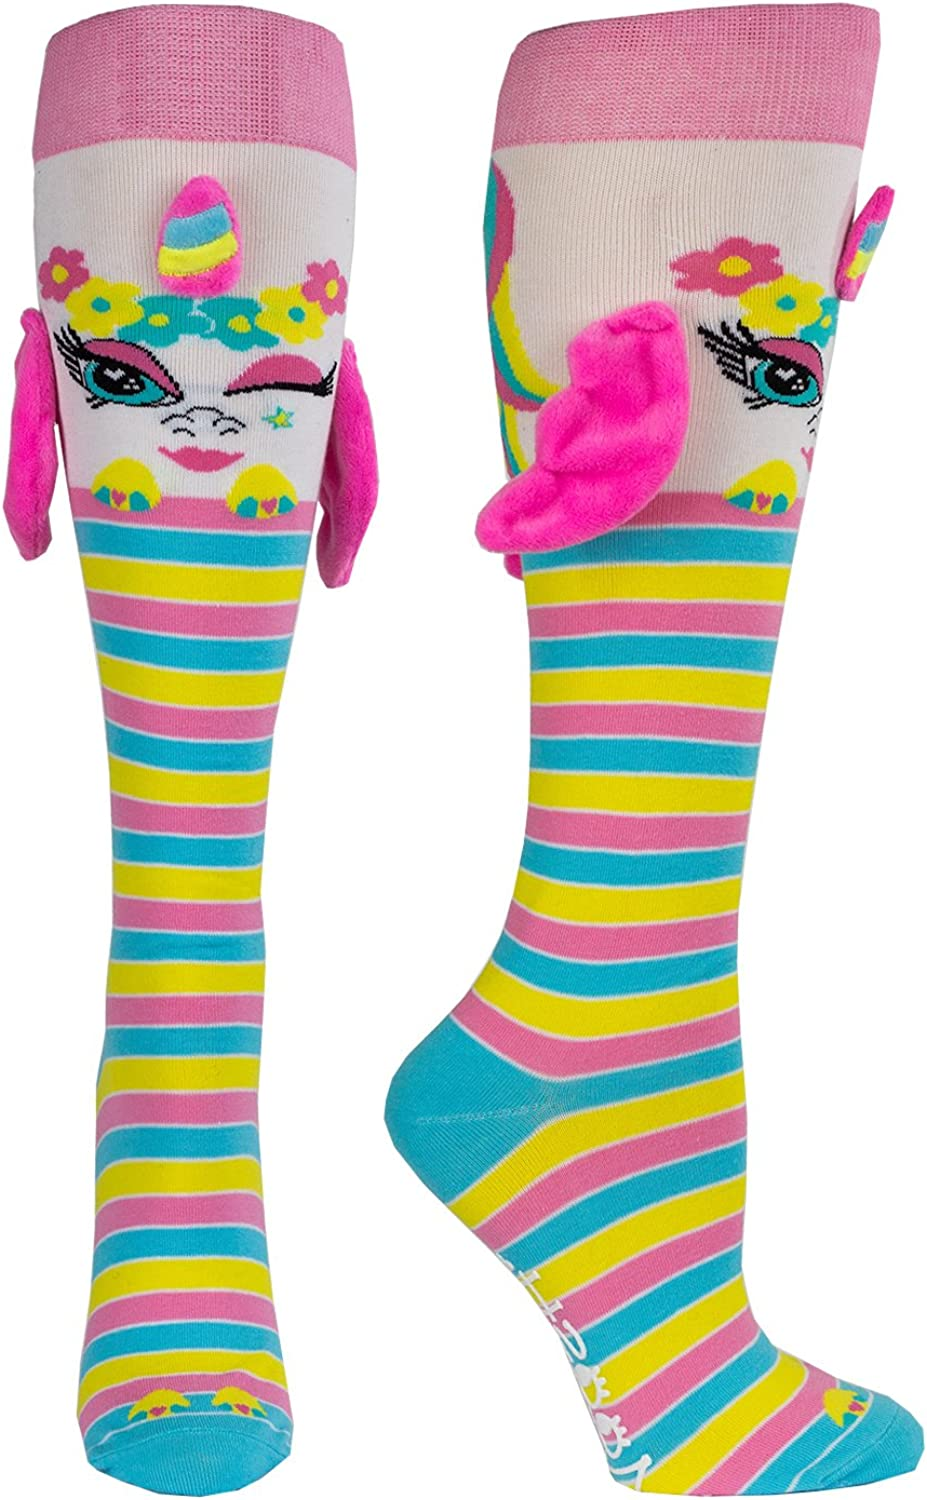 Moosh Walks Funny Fun 3D Socks for Girls and Women | Crazy Novelty Animals Unicorn and more | Age 9+